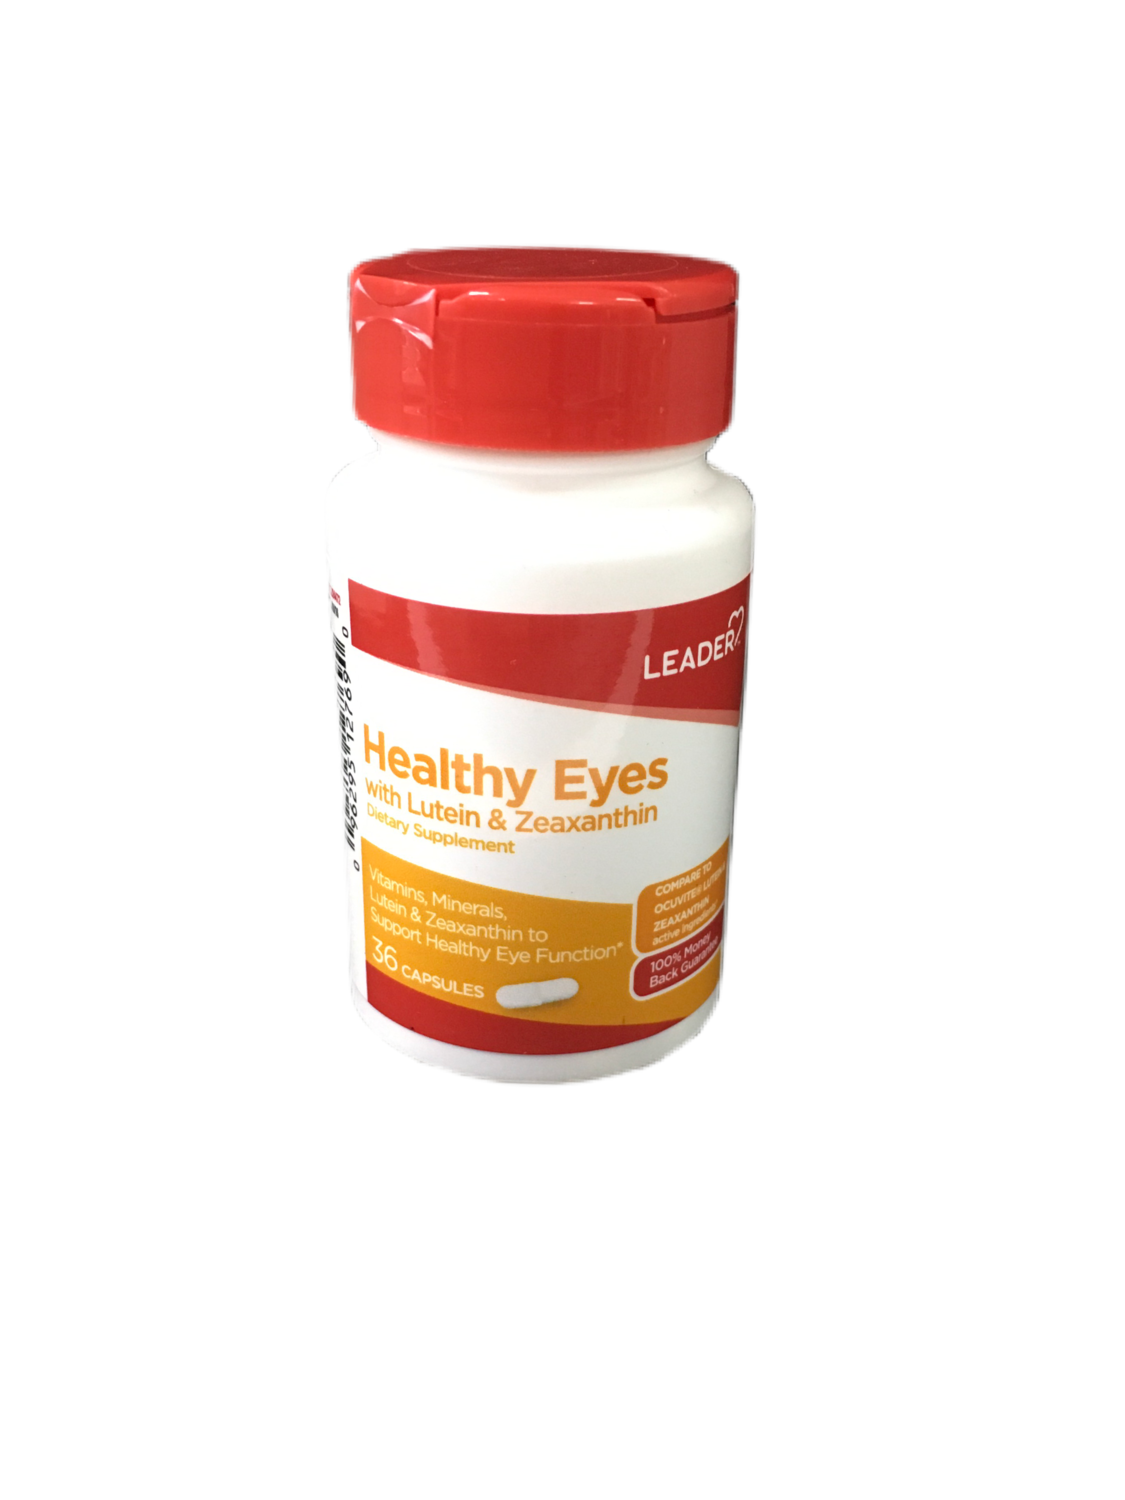 Healthy Eyes with Lutein & Zeaxanthin